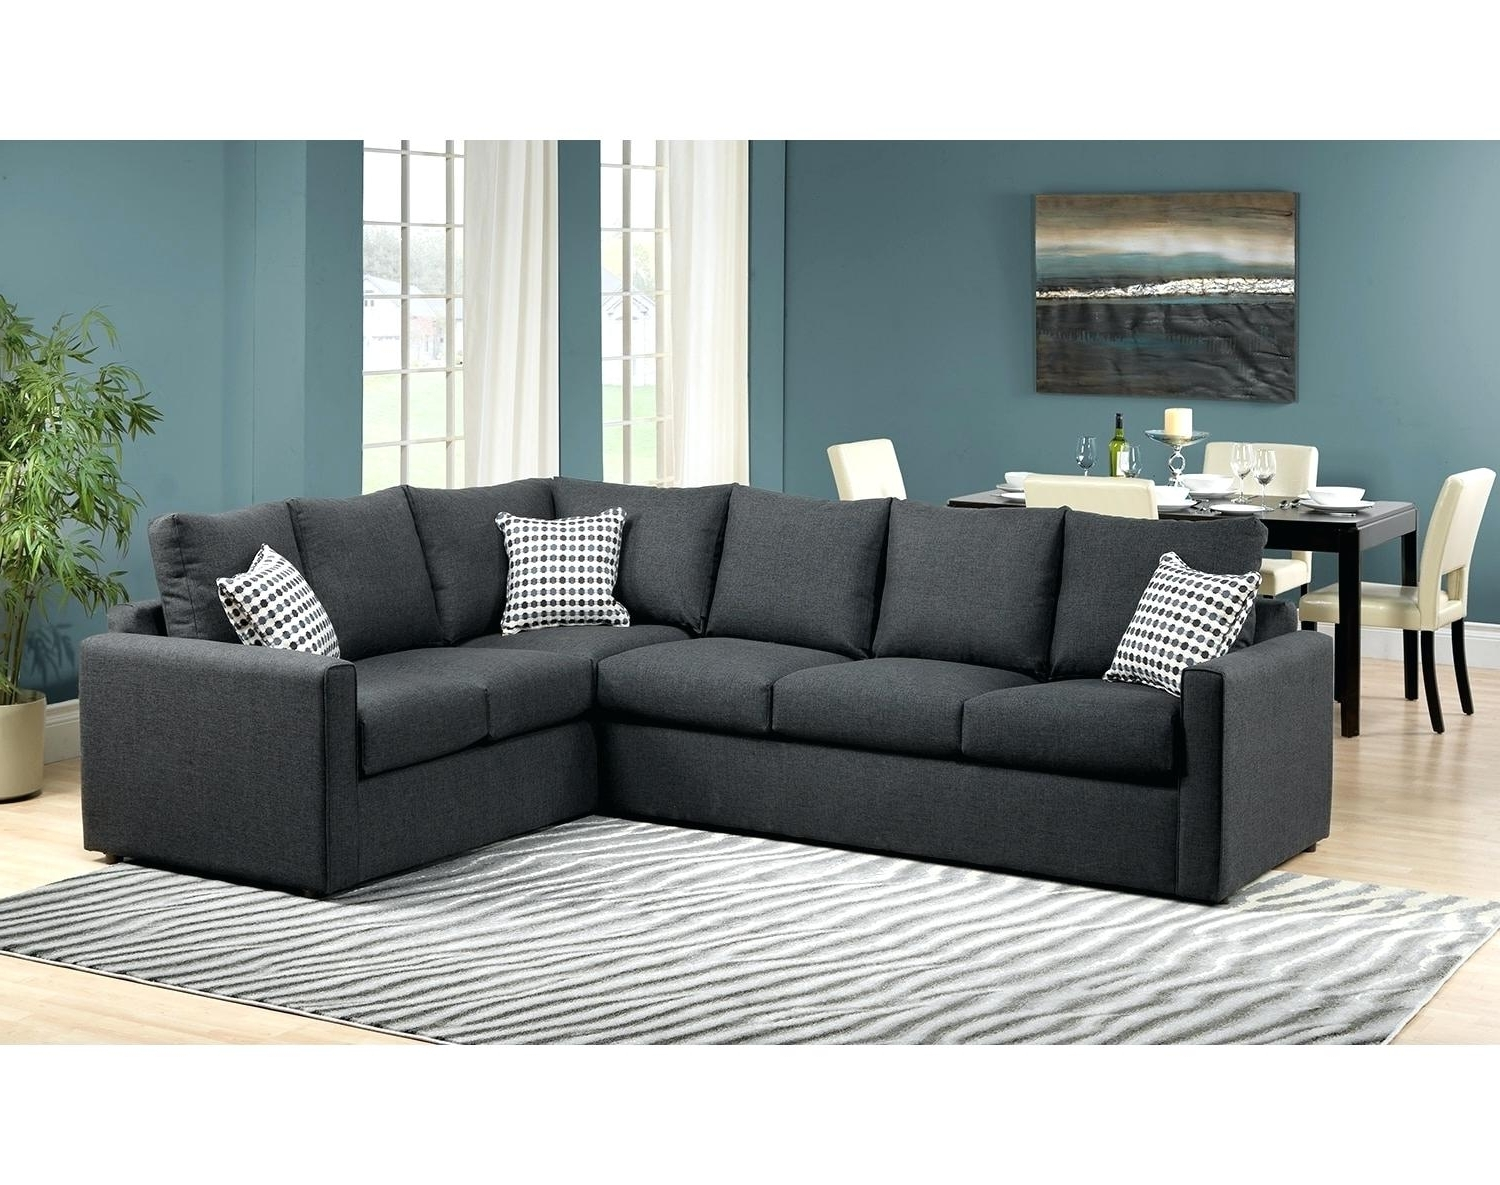 Leons Sectional Sofas Throughout Fashionable November 2017 – Perfectworldservers (View 15 of 20)